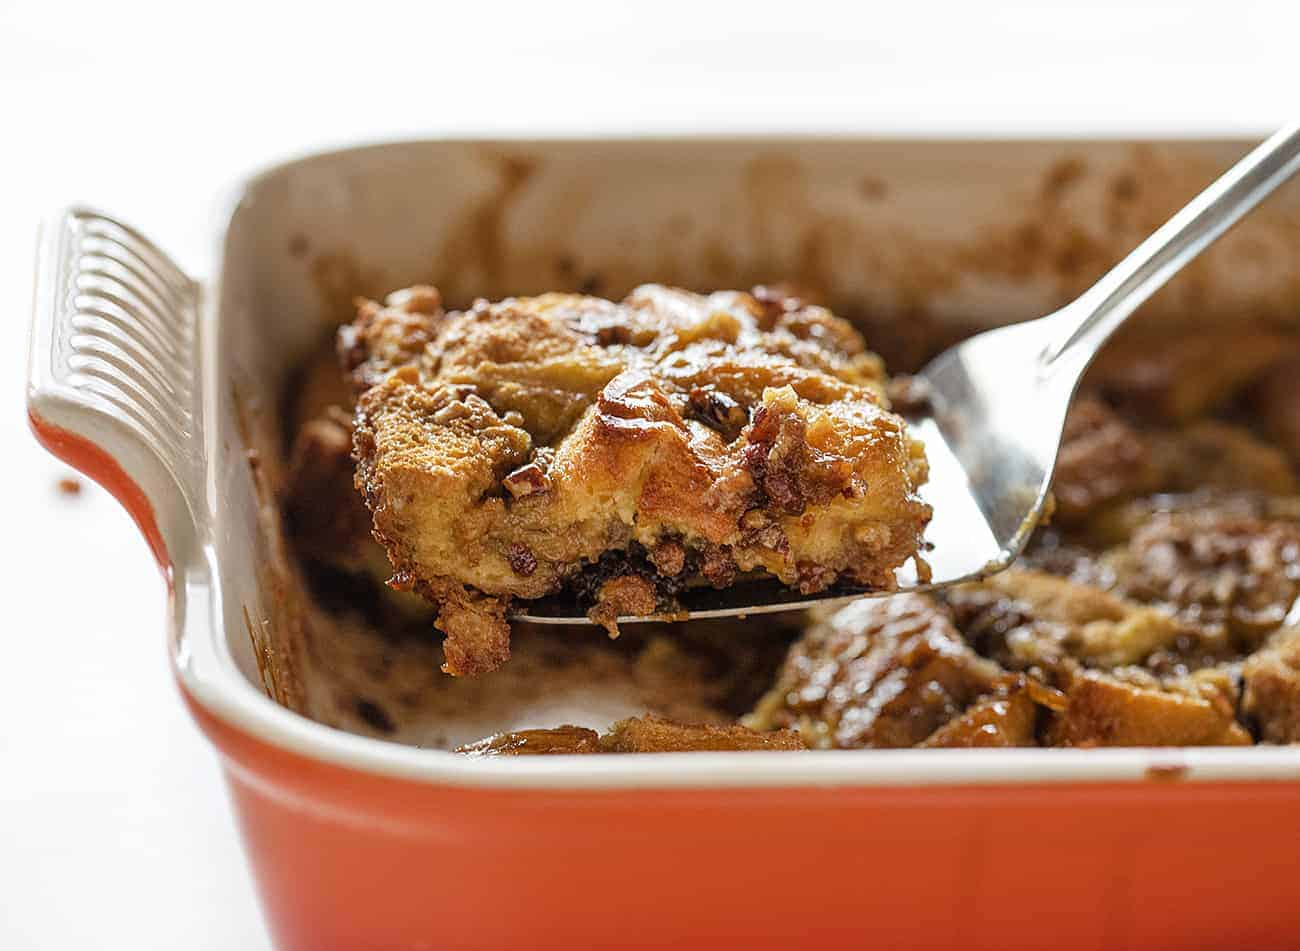 Serving one piece of Baked Pecan French Toast from a casserole dish